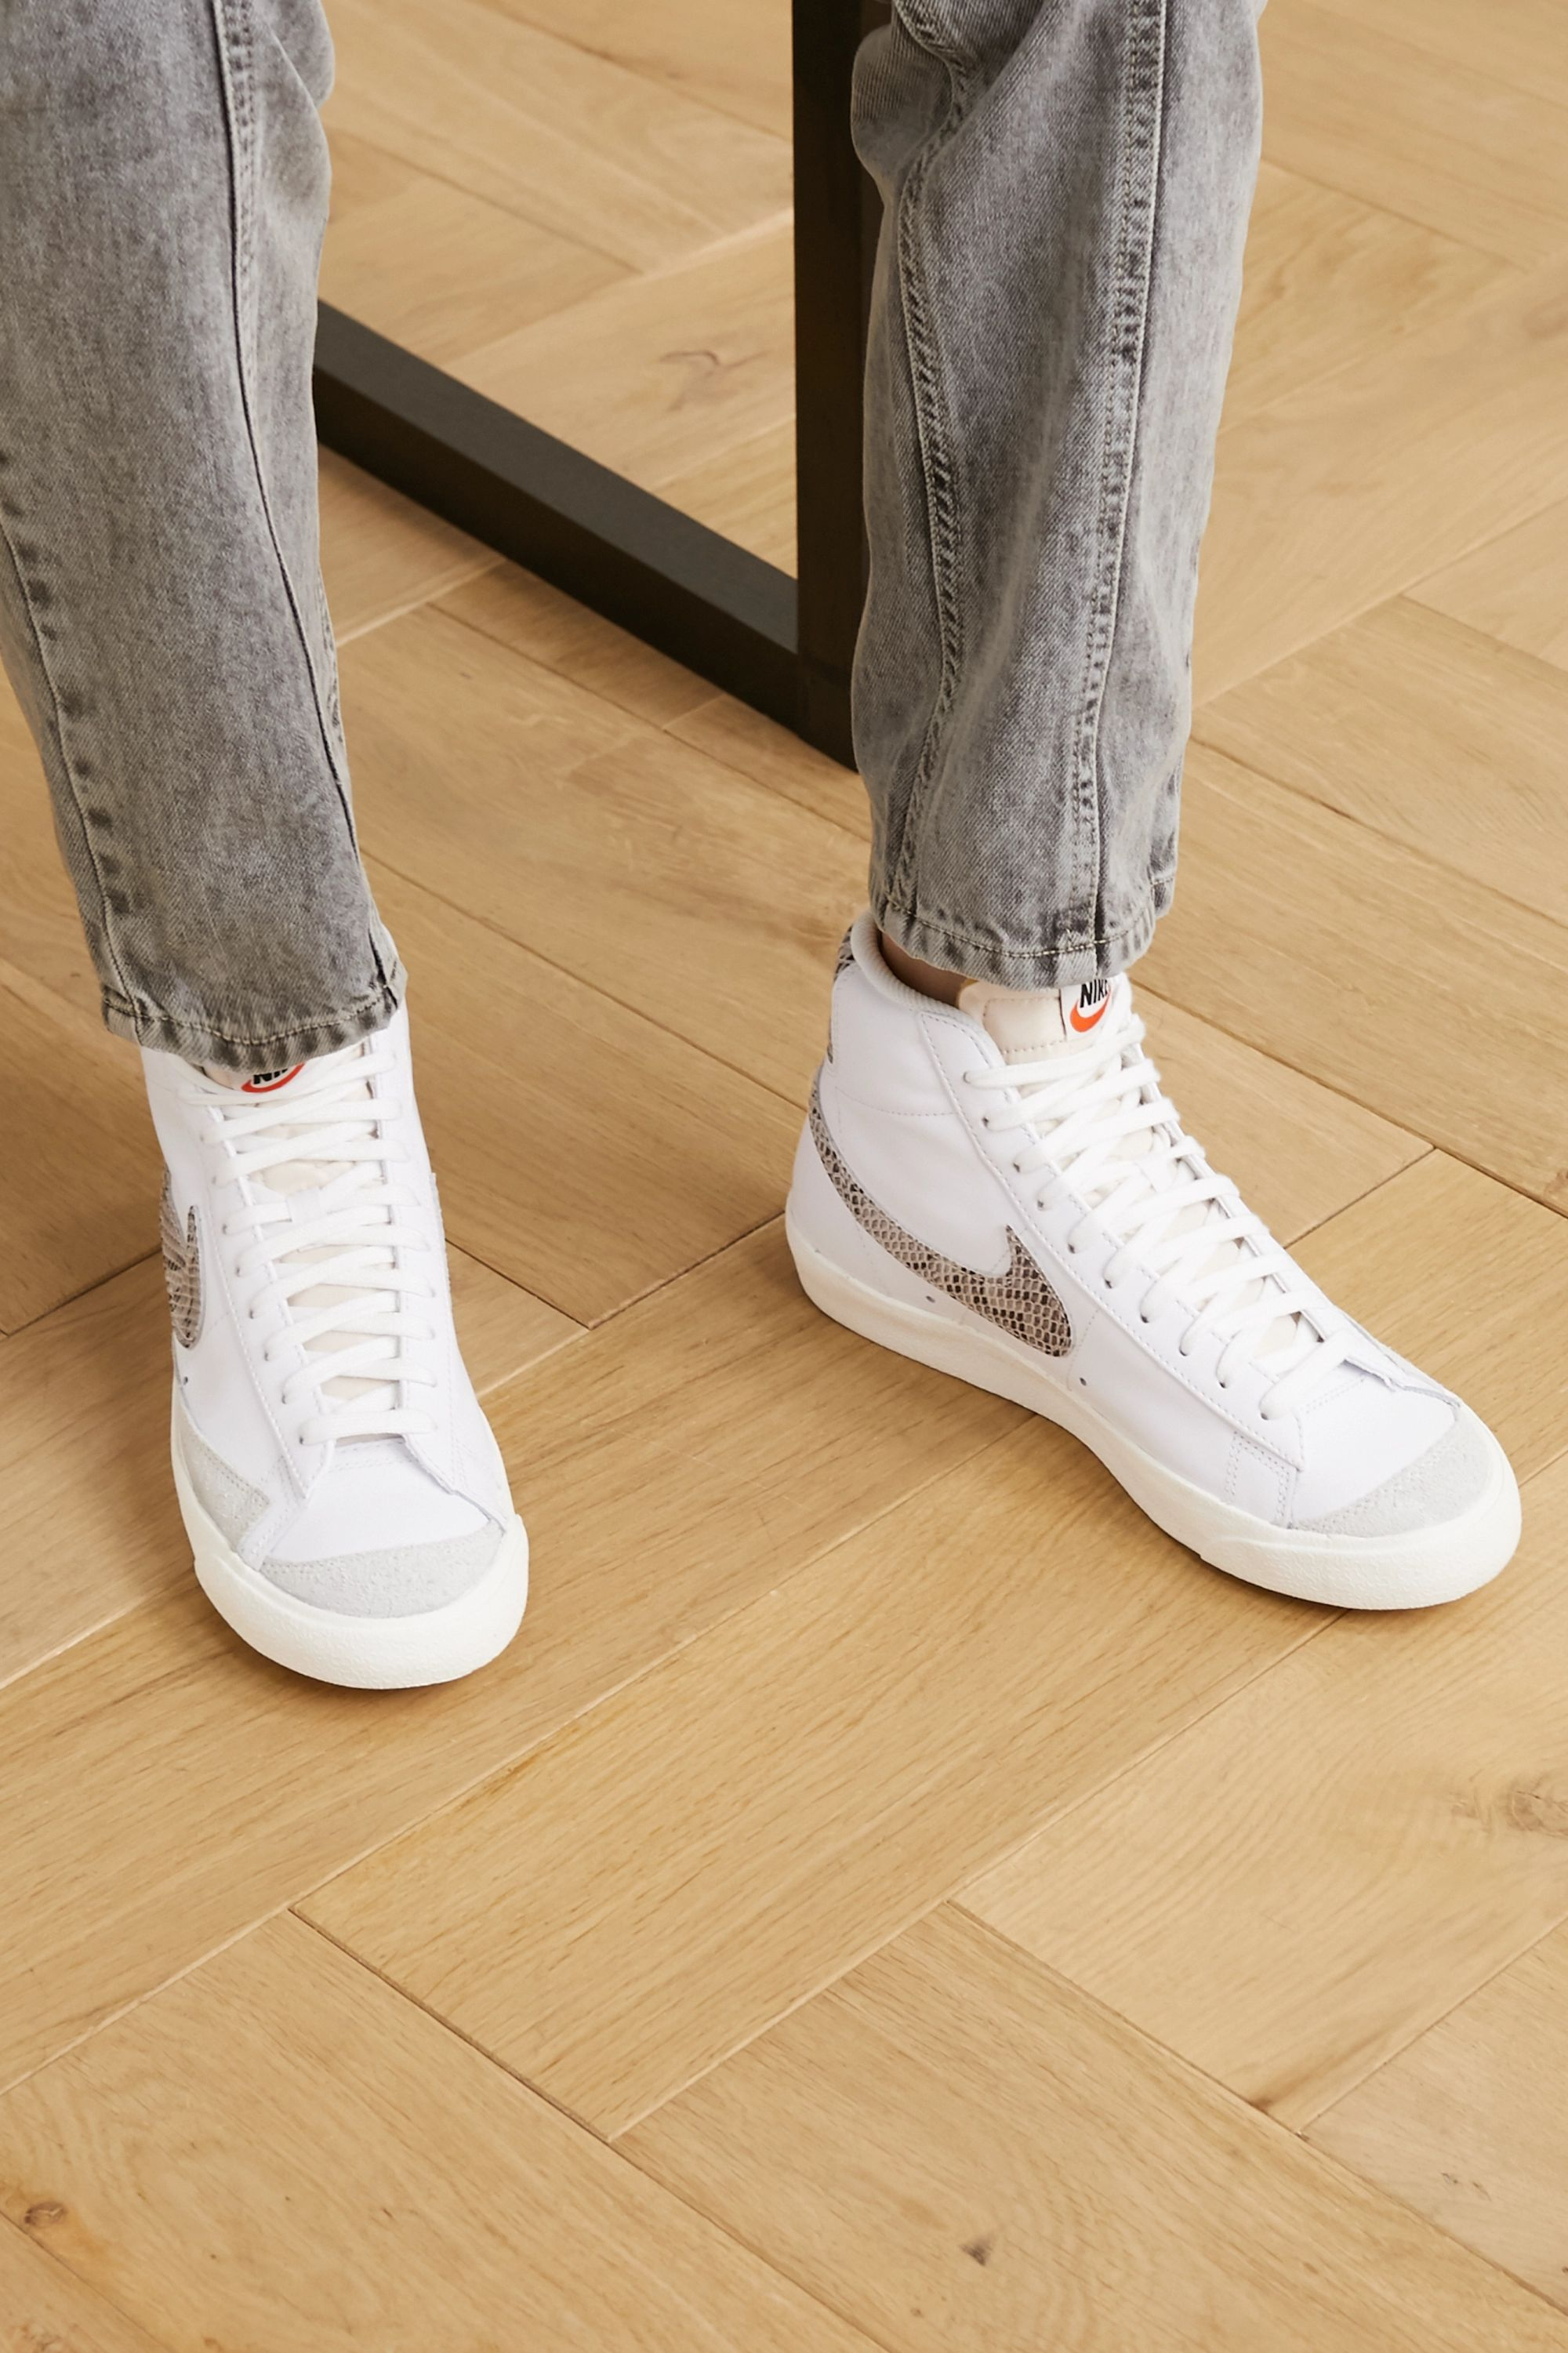 Inconveniencia parásito Sucio  White Blazer Mid 77 suede-trimmed leather high-top sneakers | Nike |  NET-A-PORTER